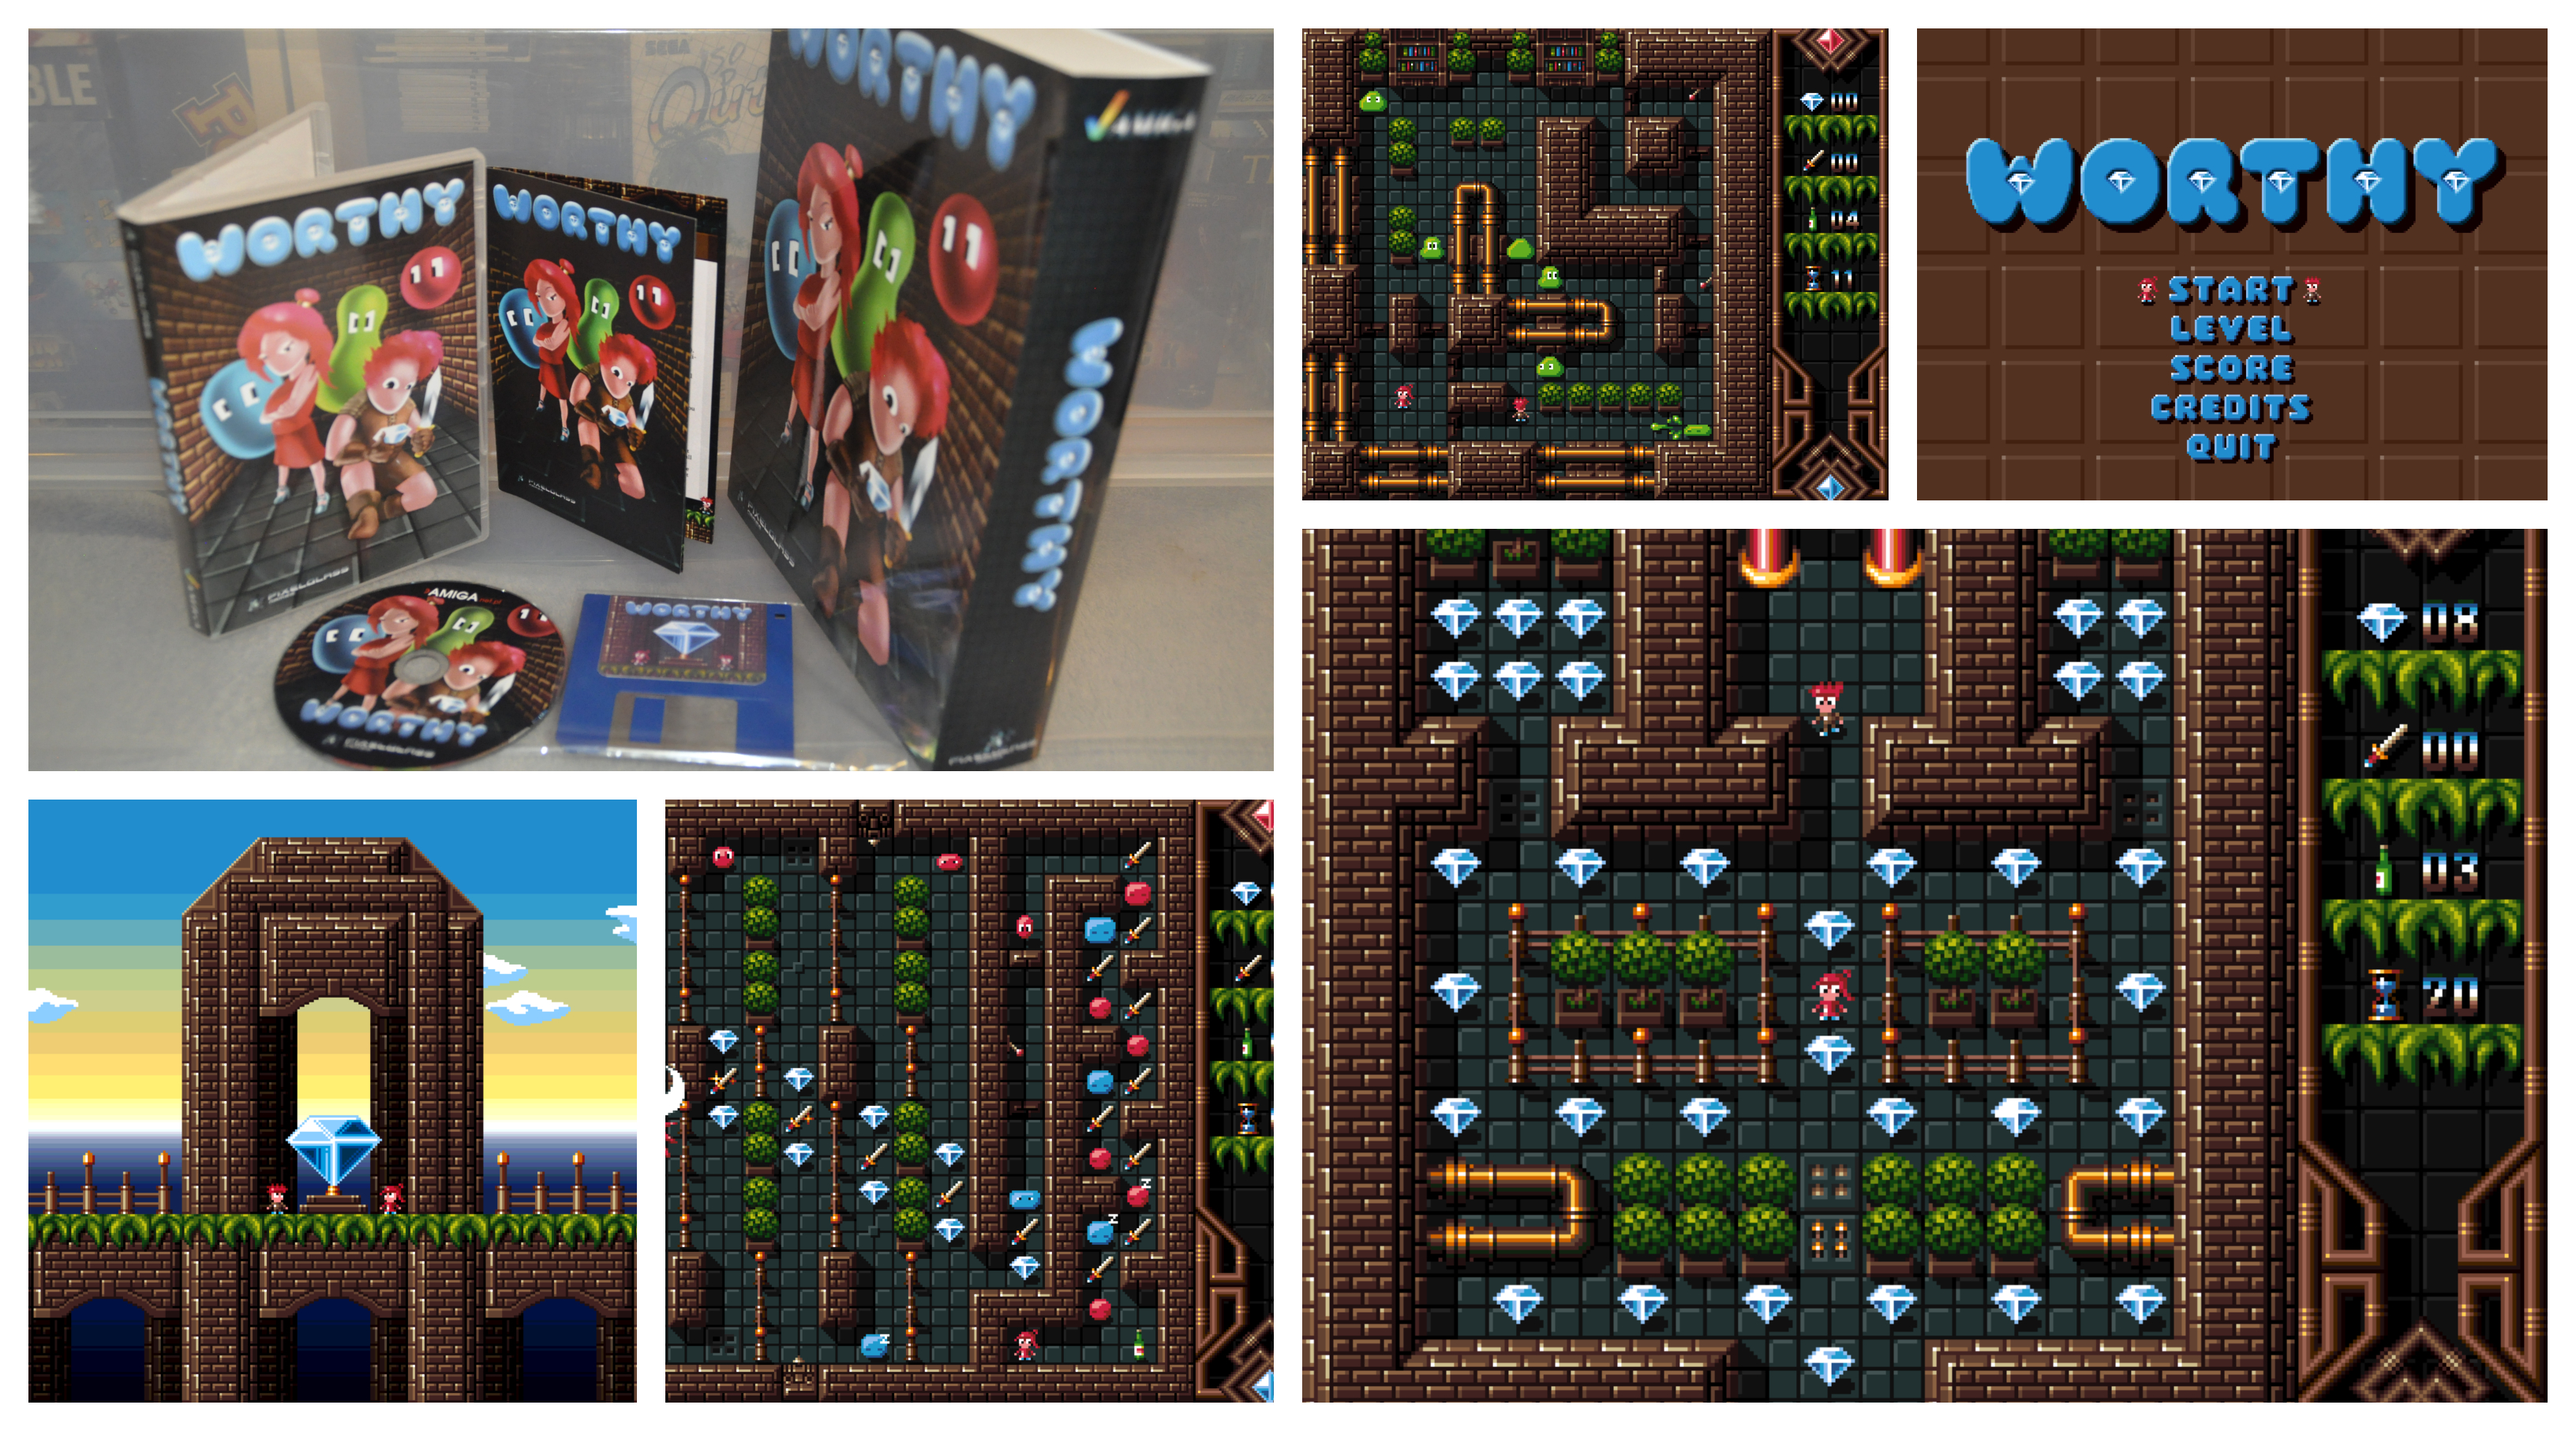 A Look At The Amiga Game Worthy And Worthy It Is!